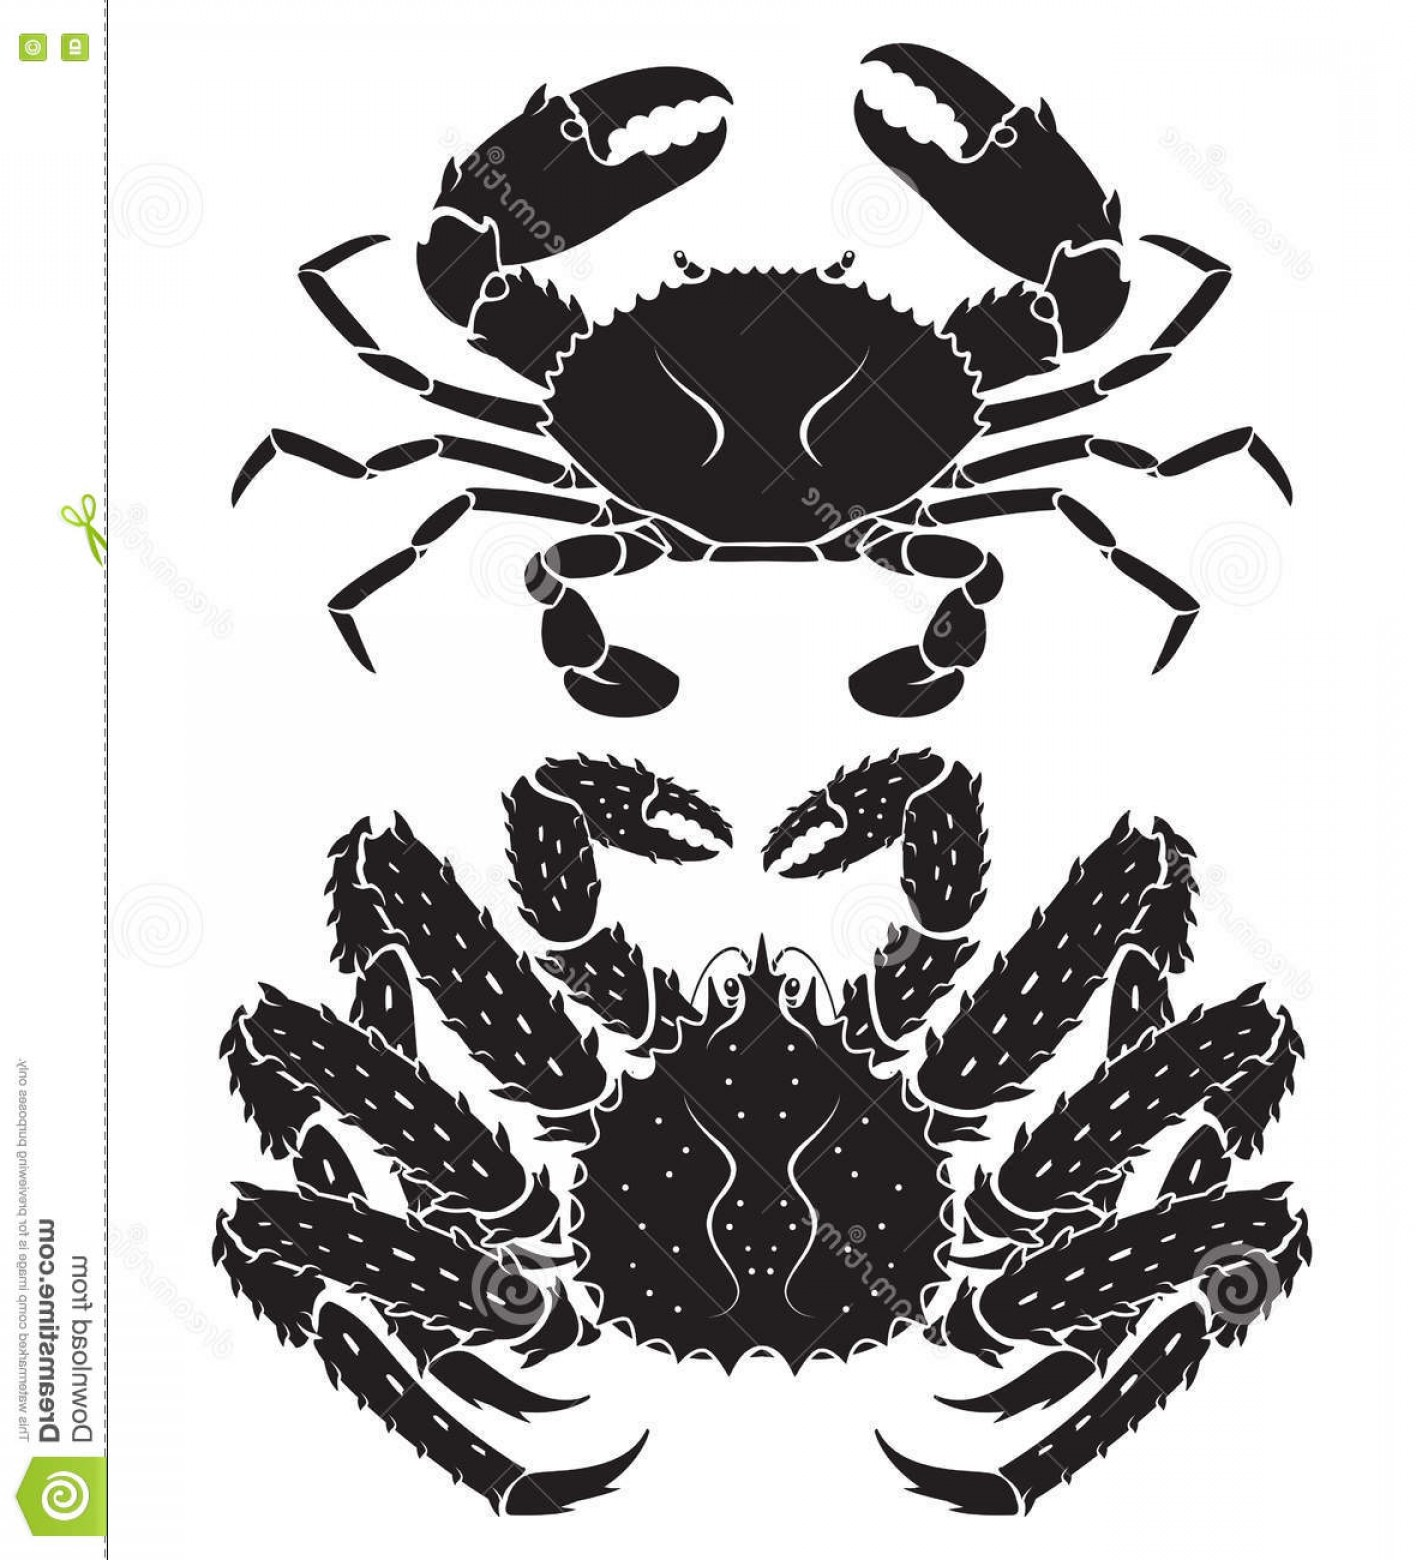 Crab Vector Black: Stock Illustration Alaskan King Crab Silhouette Vector Illustrations Image